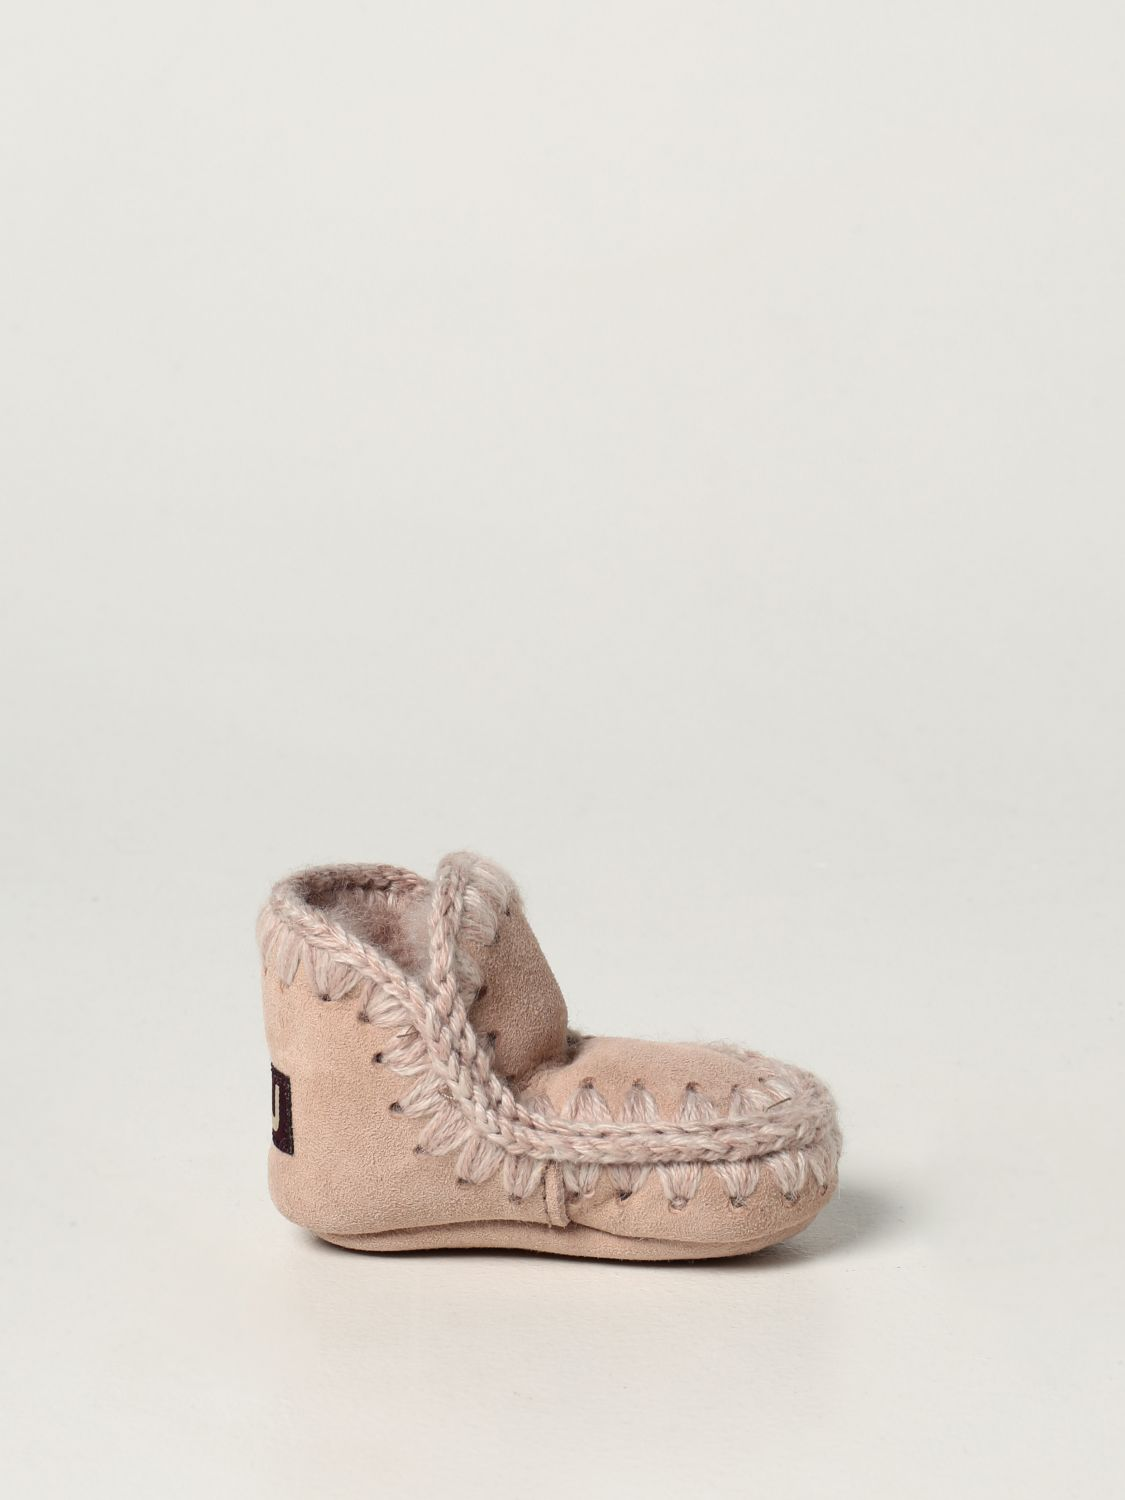 Chaussures Mou: Chaussures enfant Mou beige 1